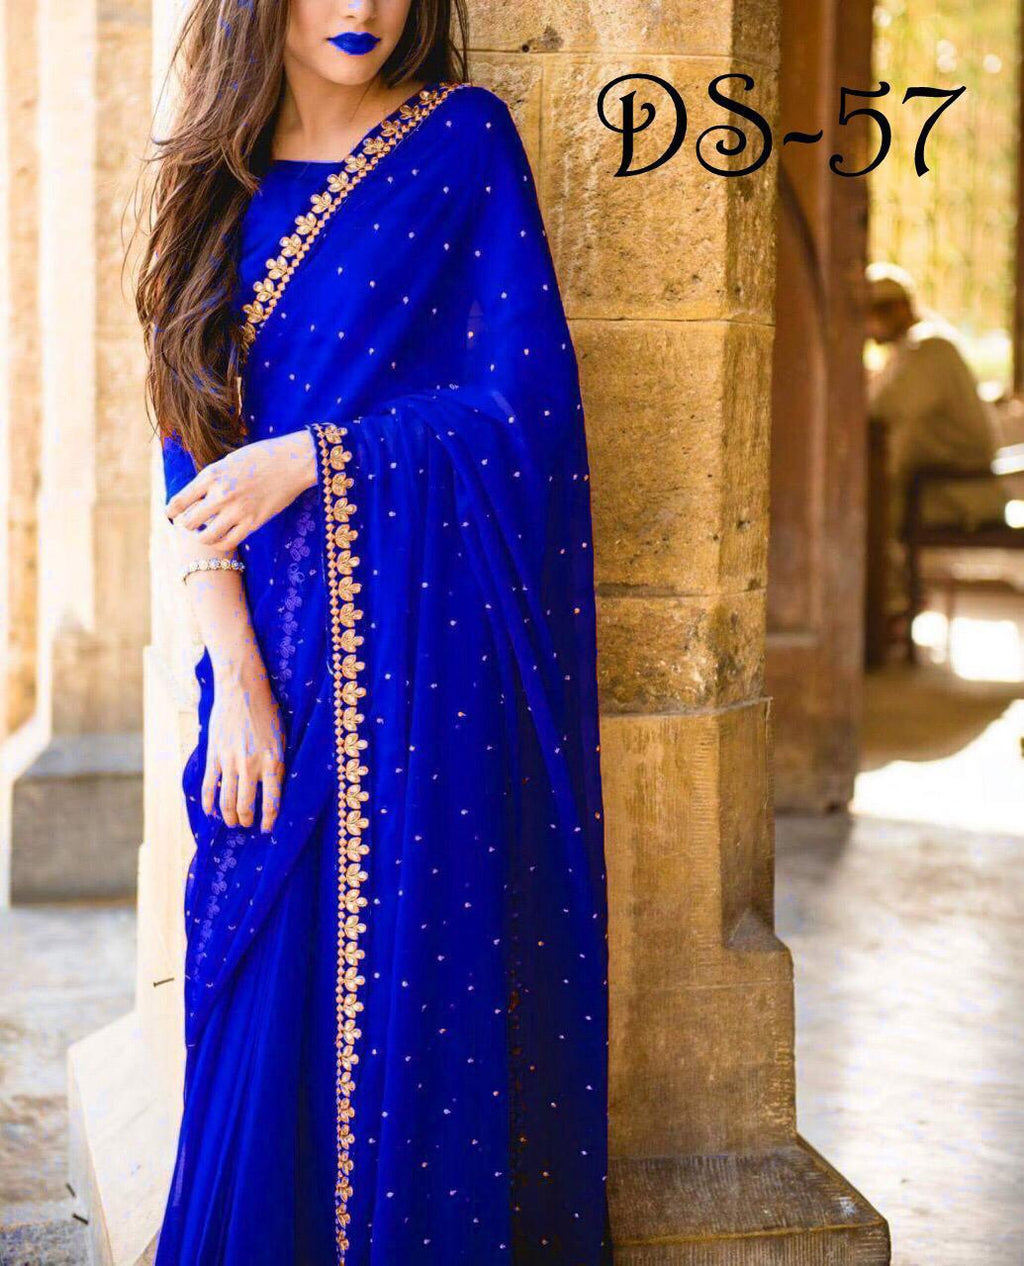 Blue Georgette With Pearl Sarees Online Shopping Low Price